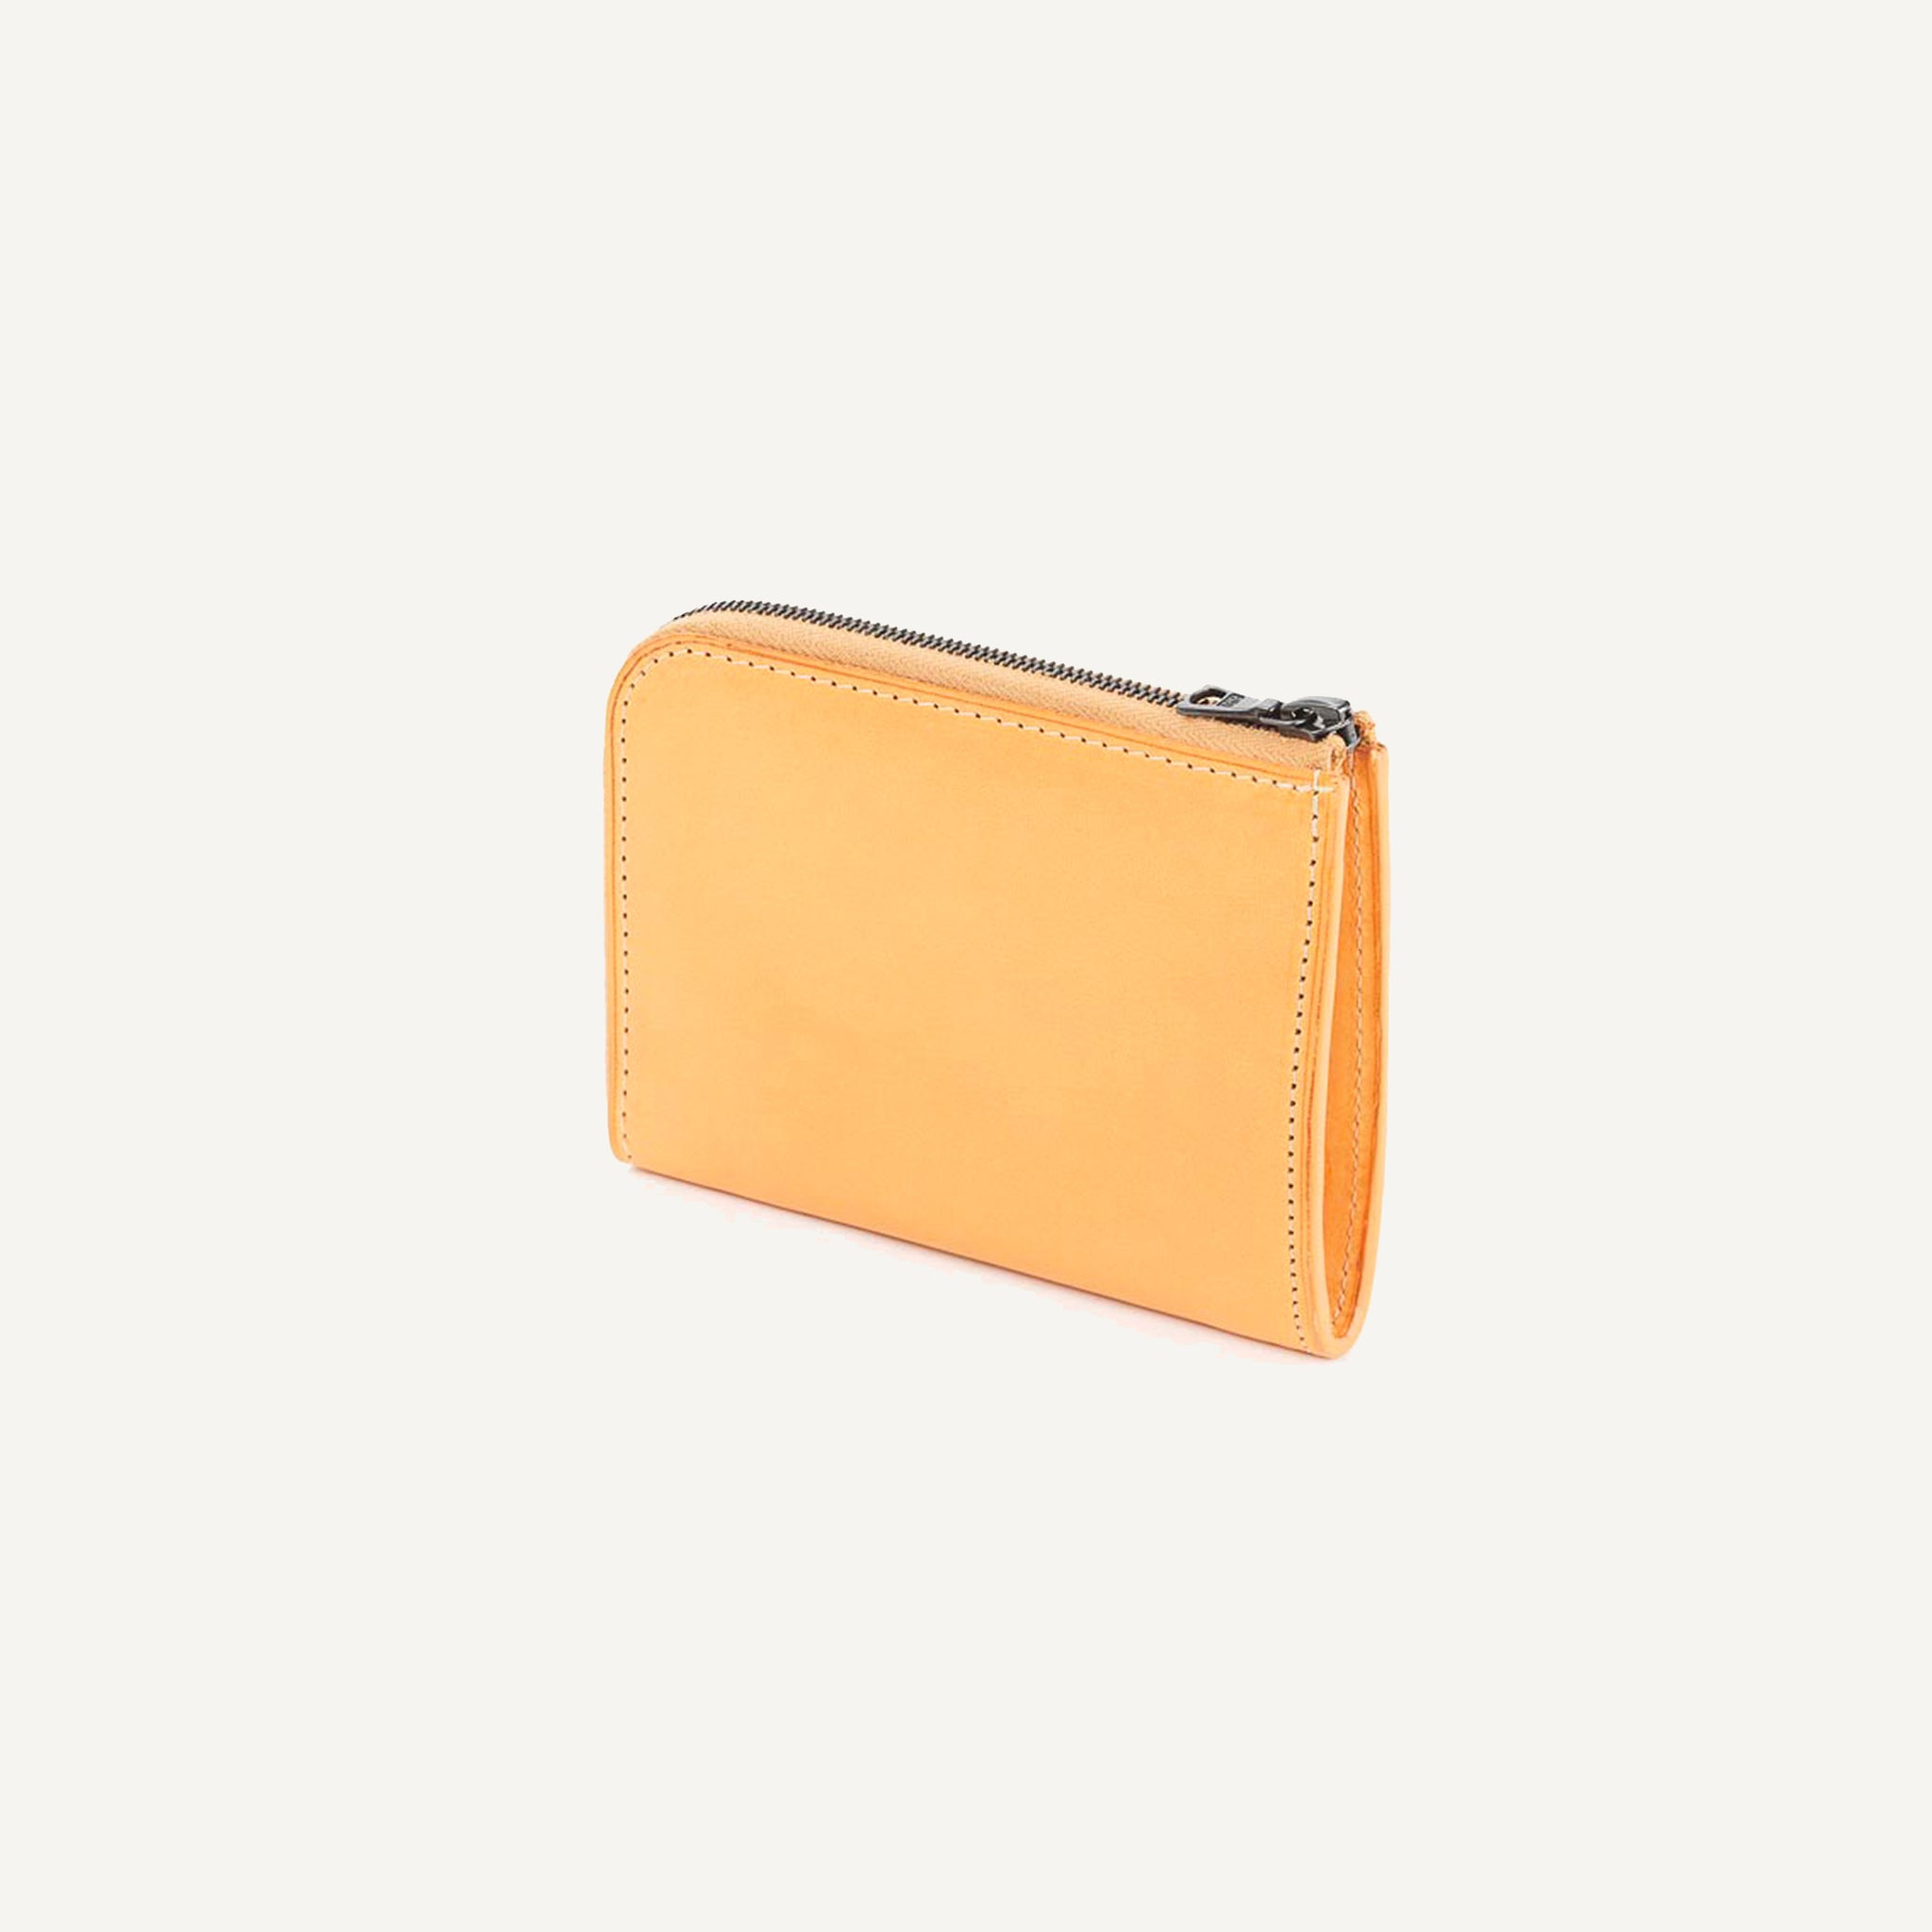 ISAAC REINA SIMPLE ZIP WALLET